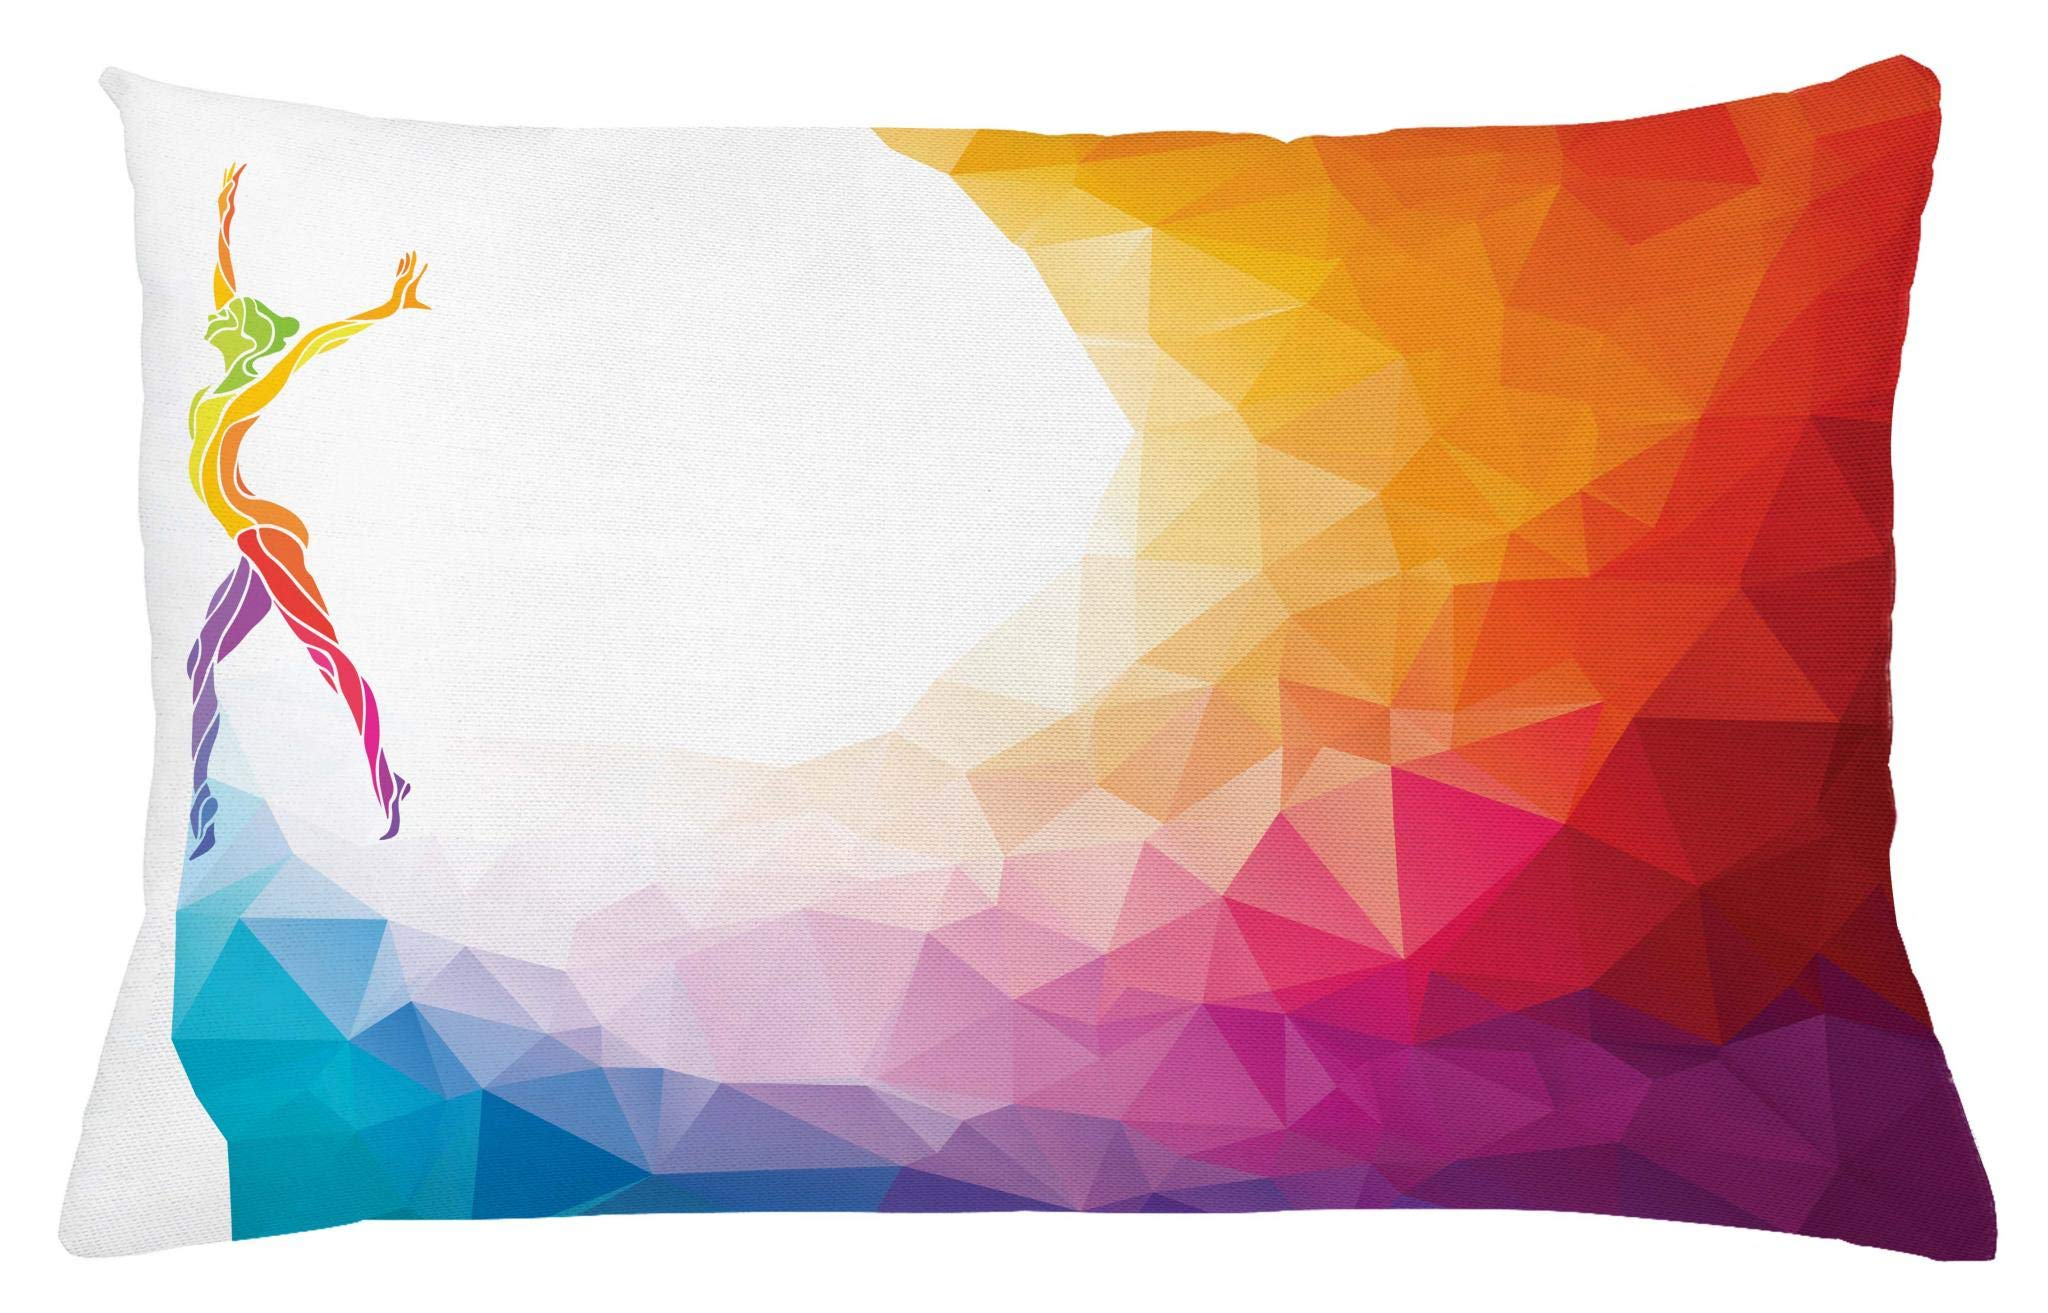 Ambesonne Sports Throw Pillow Cushion Cover, Gymnastics Girl Gymnast Portrait Colored Geometric Digital Shapes Modern Olympics, Decorative Accent Pillow Case, 26 W X 16 L Inches, Multicolor